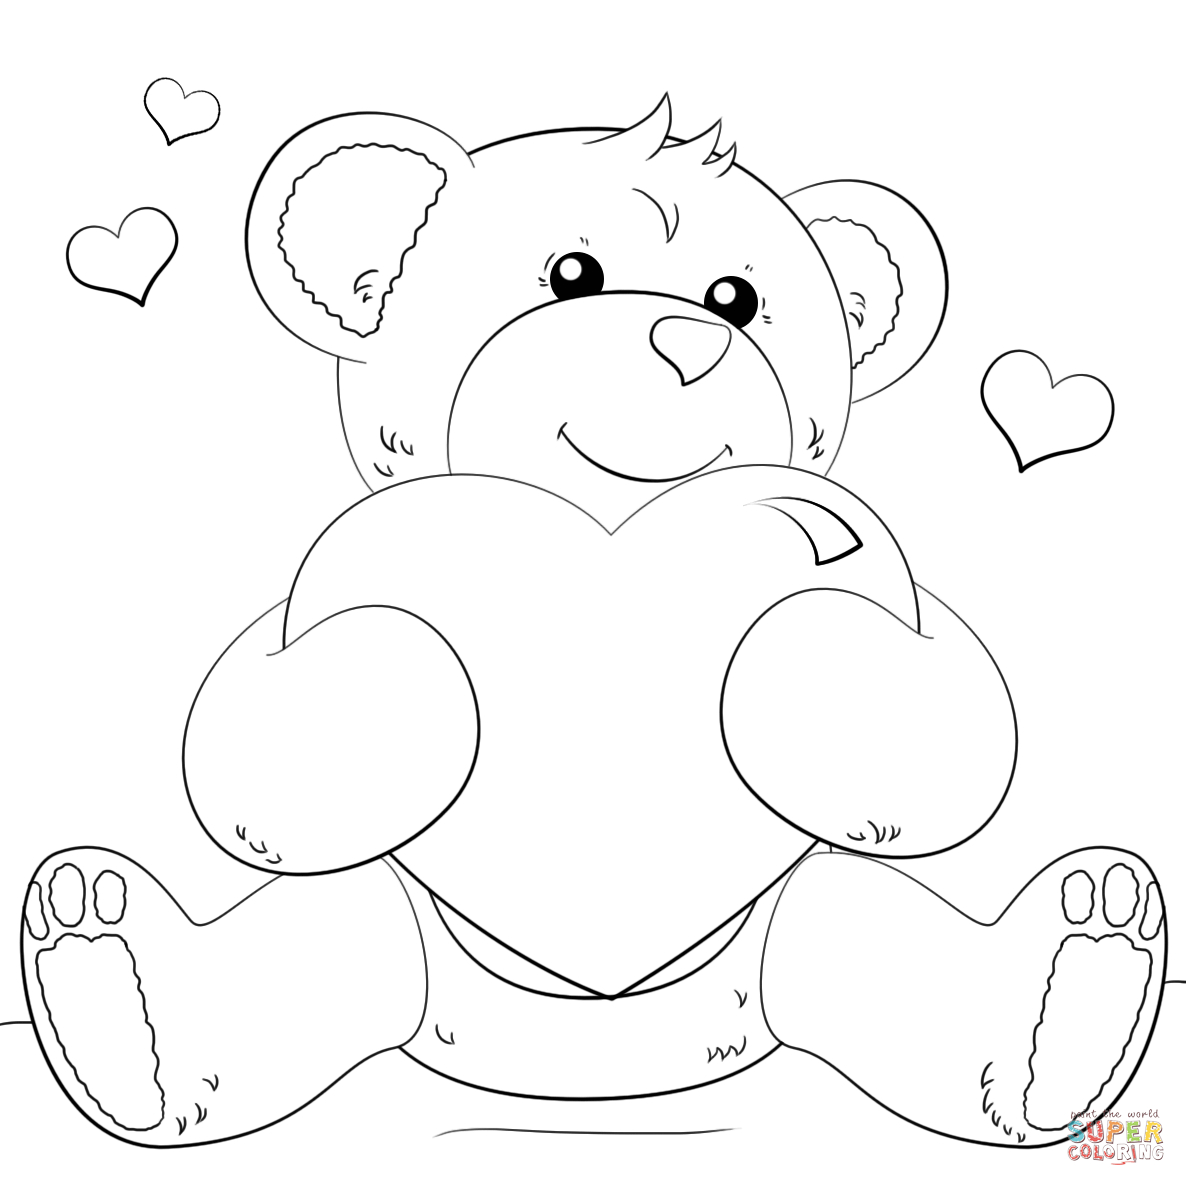 Cute Bear With Heart Coloring Page | Free Printable Coloring Pages - Free Printable Hearts